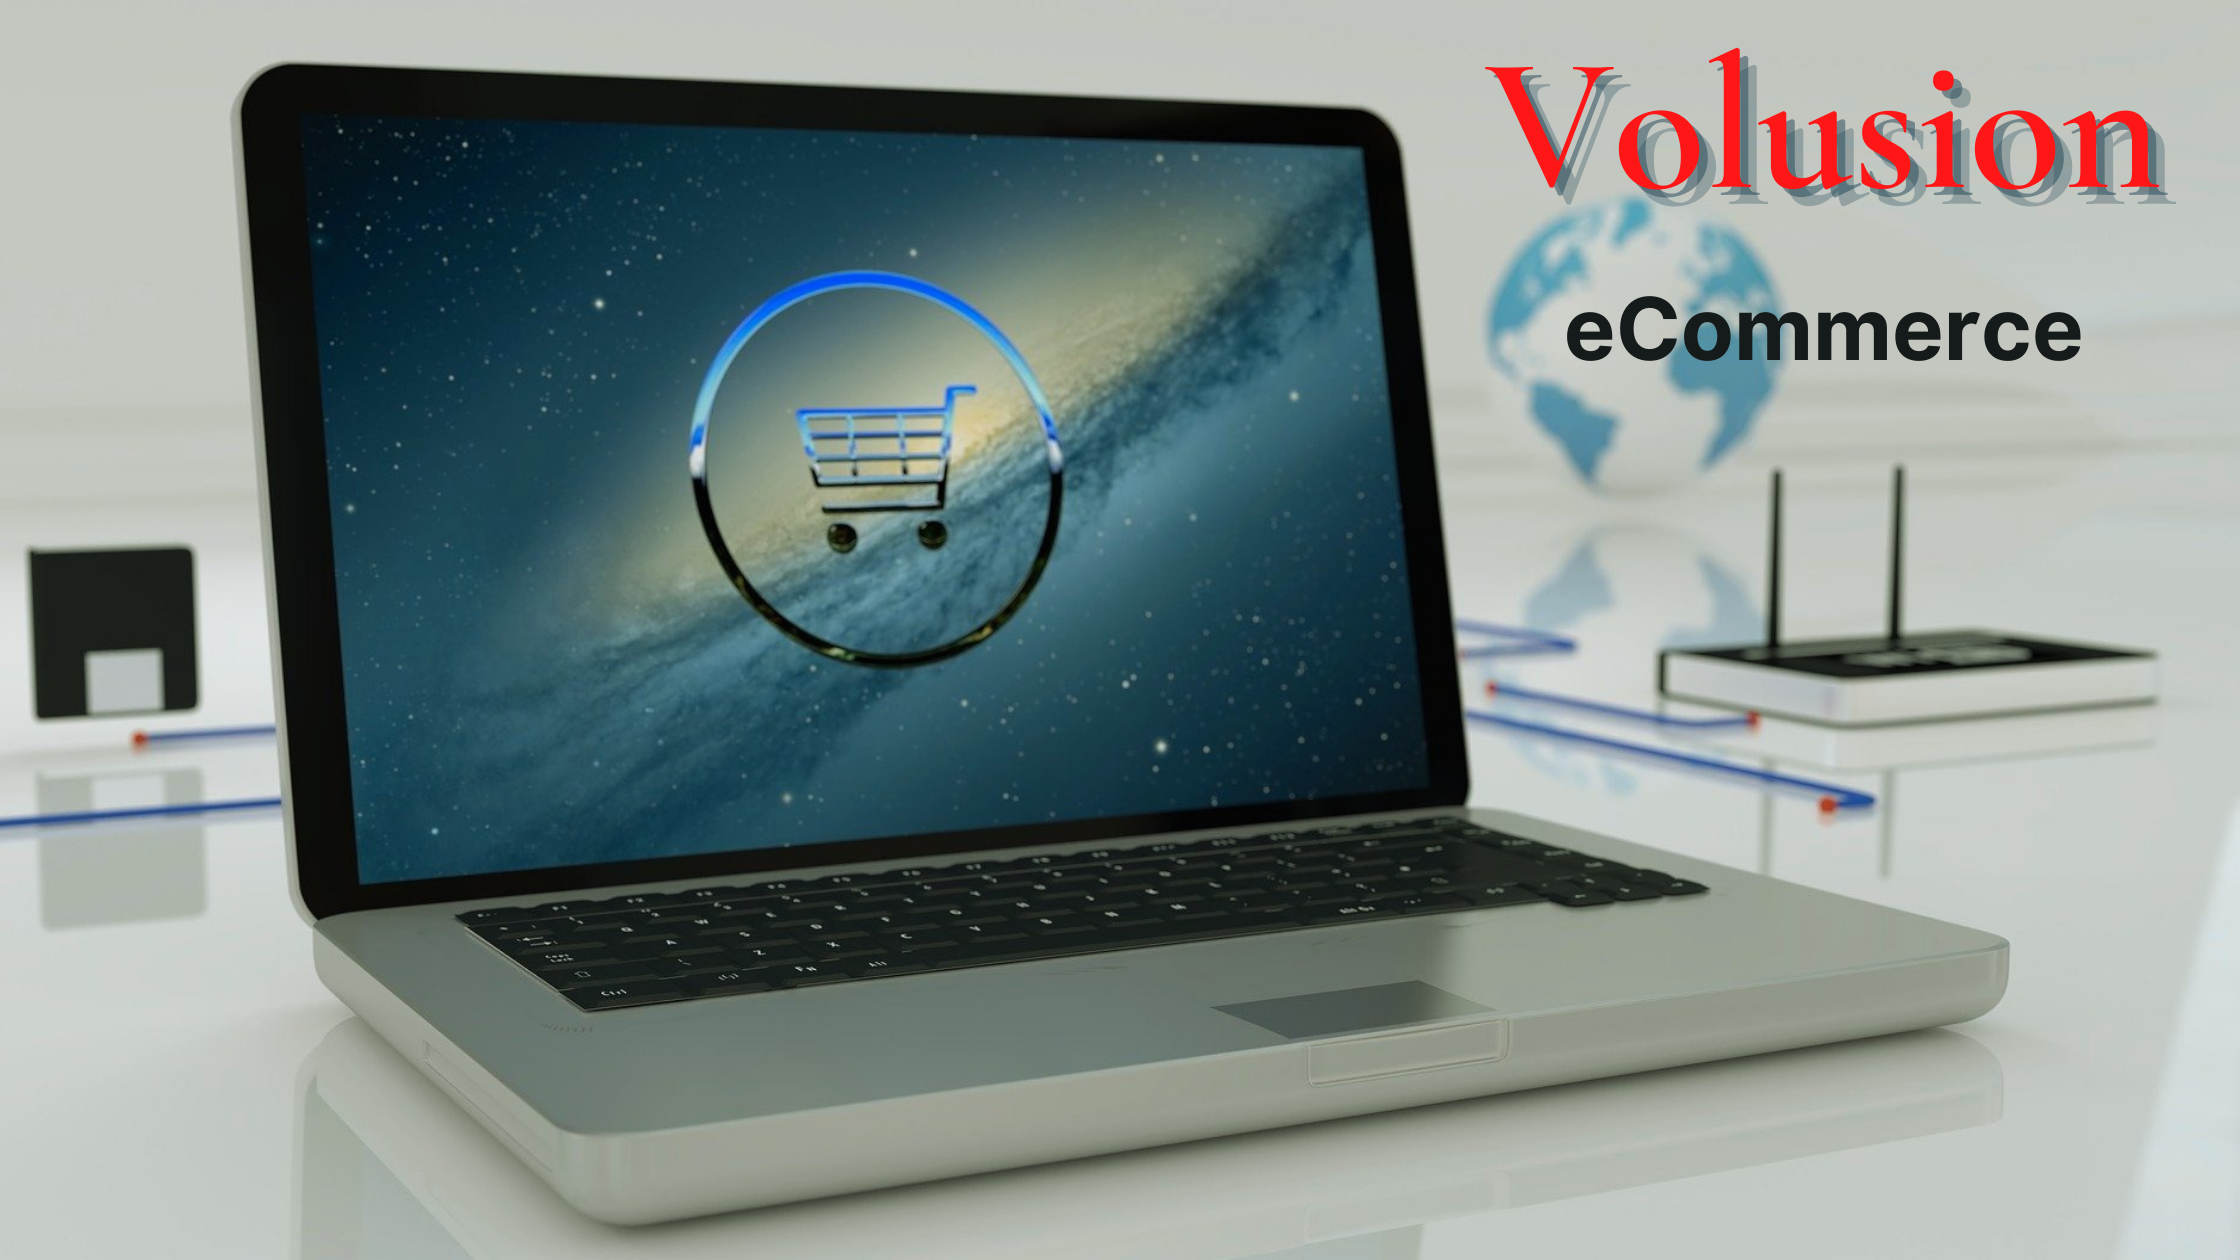 What is Volusion Ecommerce